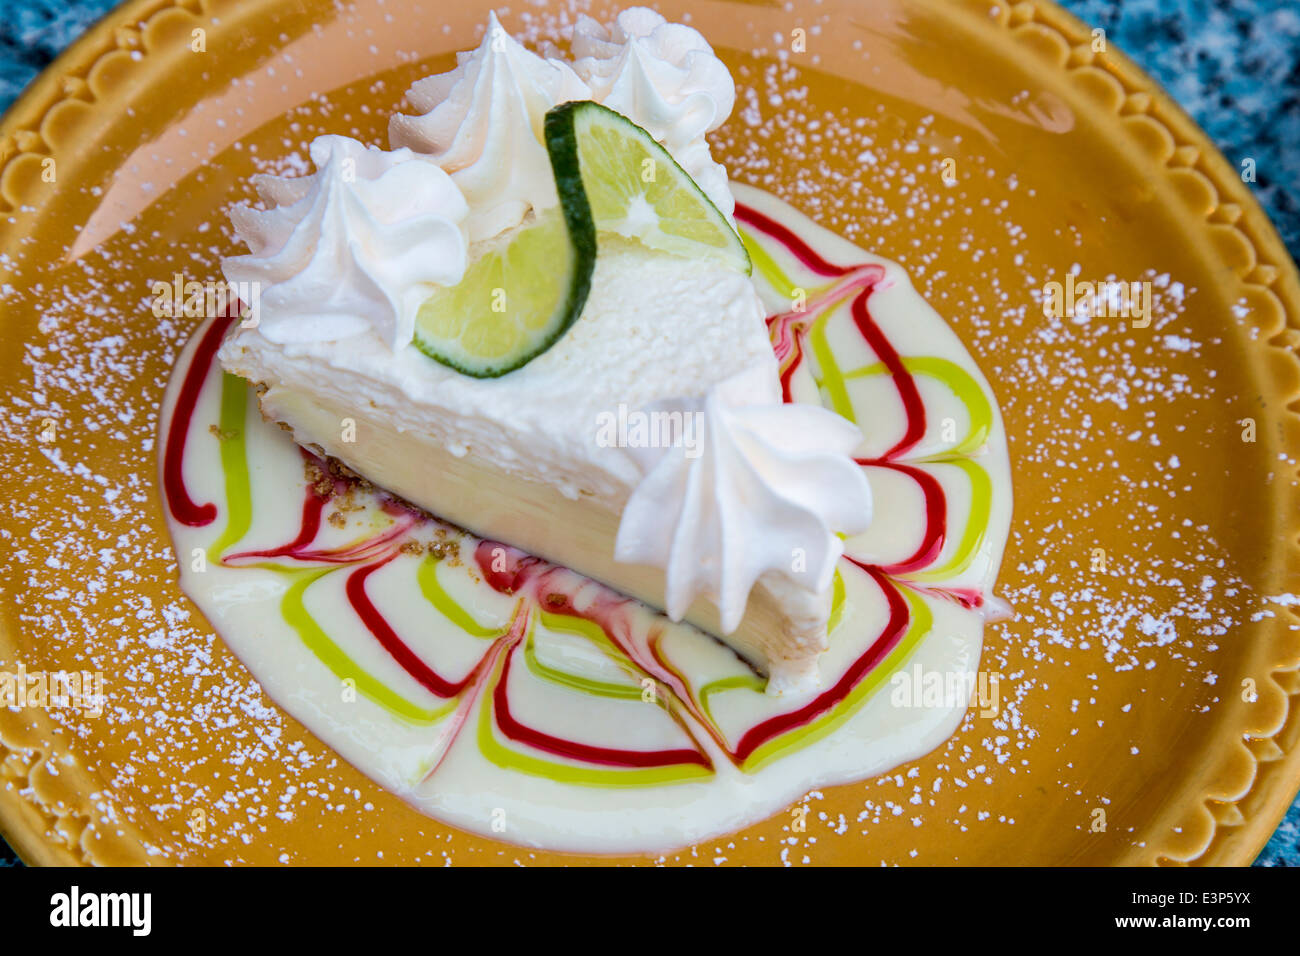 A slice of delicious key lime pie at The Key Lime Bistro in Captiva Island, Florida, USA Stock Photo